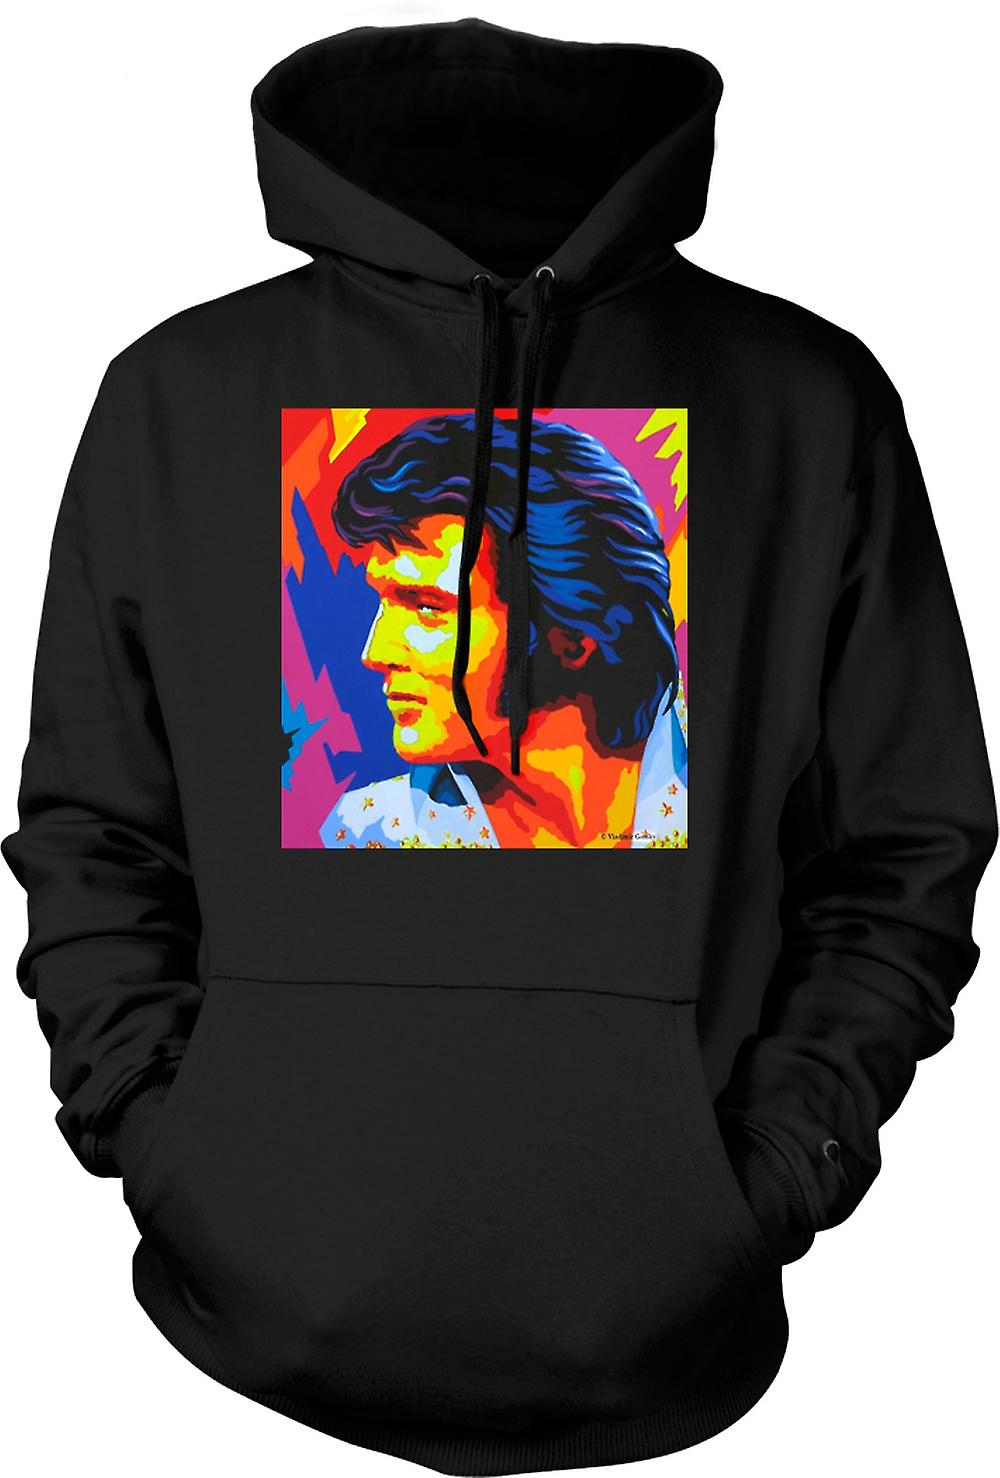 Para hombre con capucha - color de Elvis Presley - Pop Art